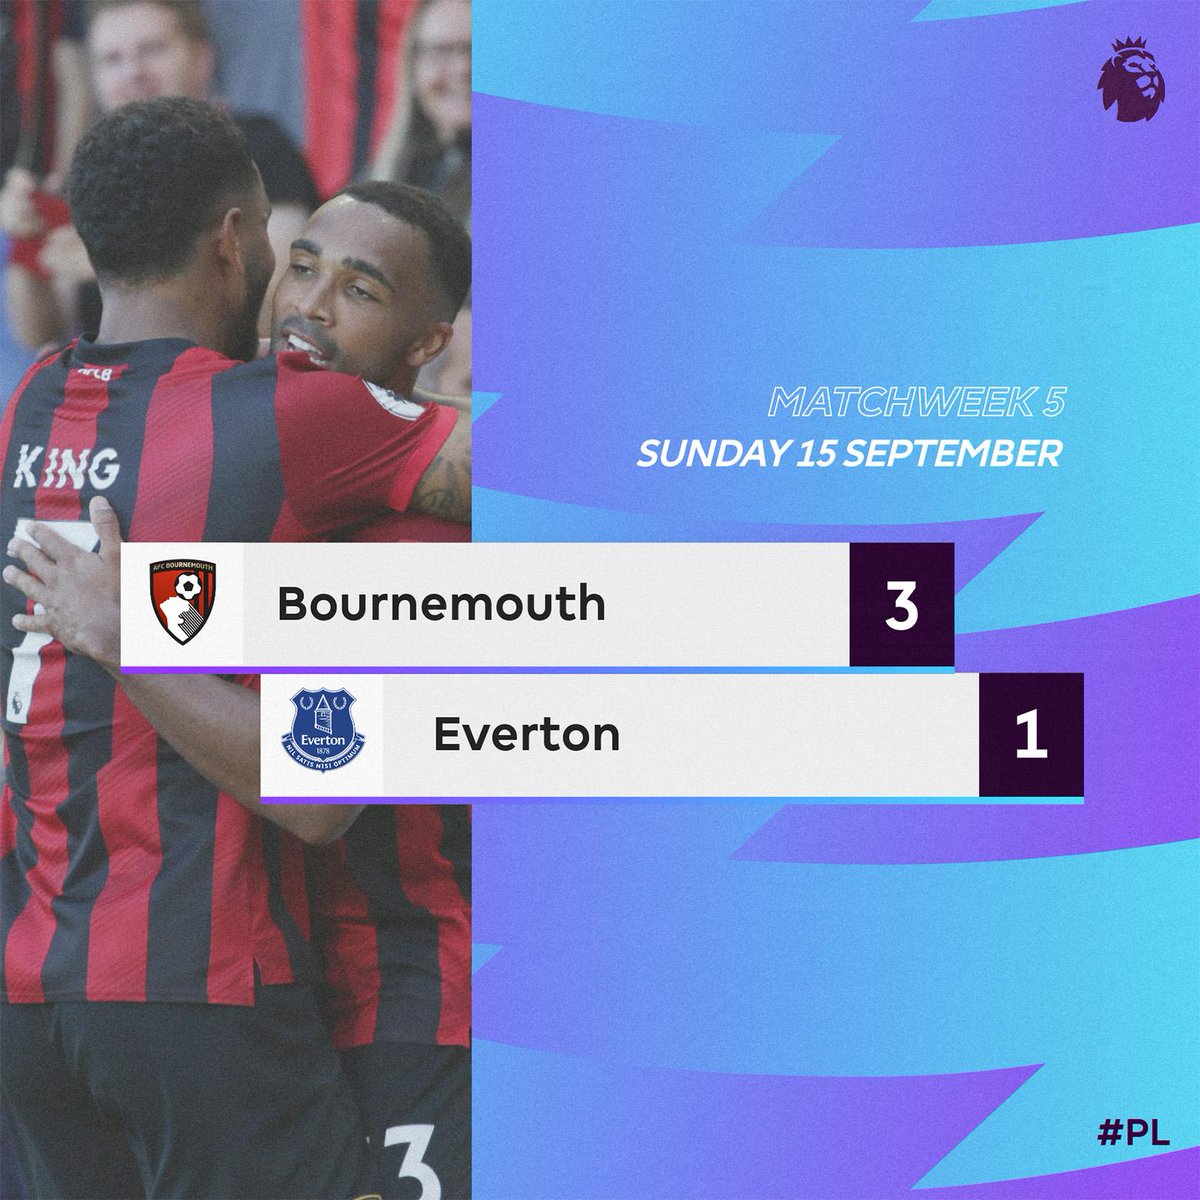 Bournemouth-Everton